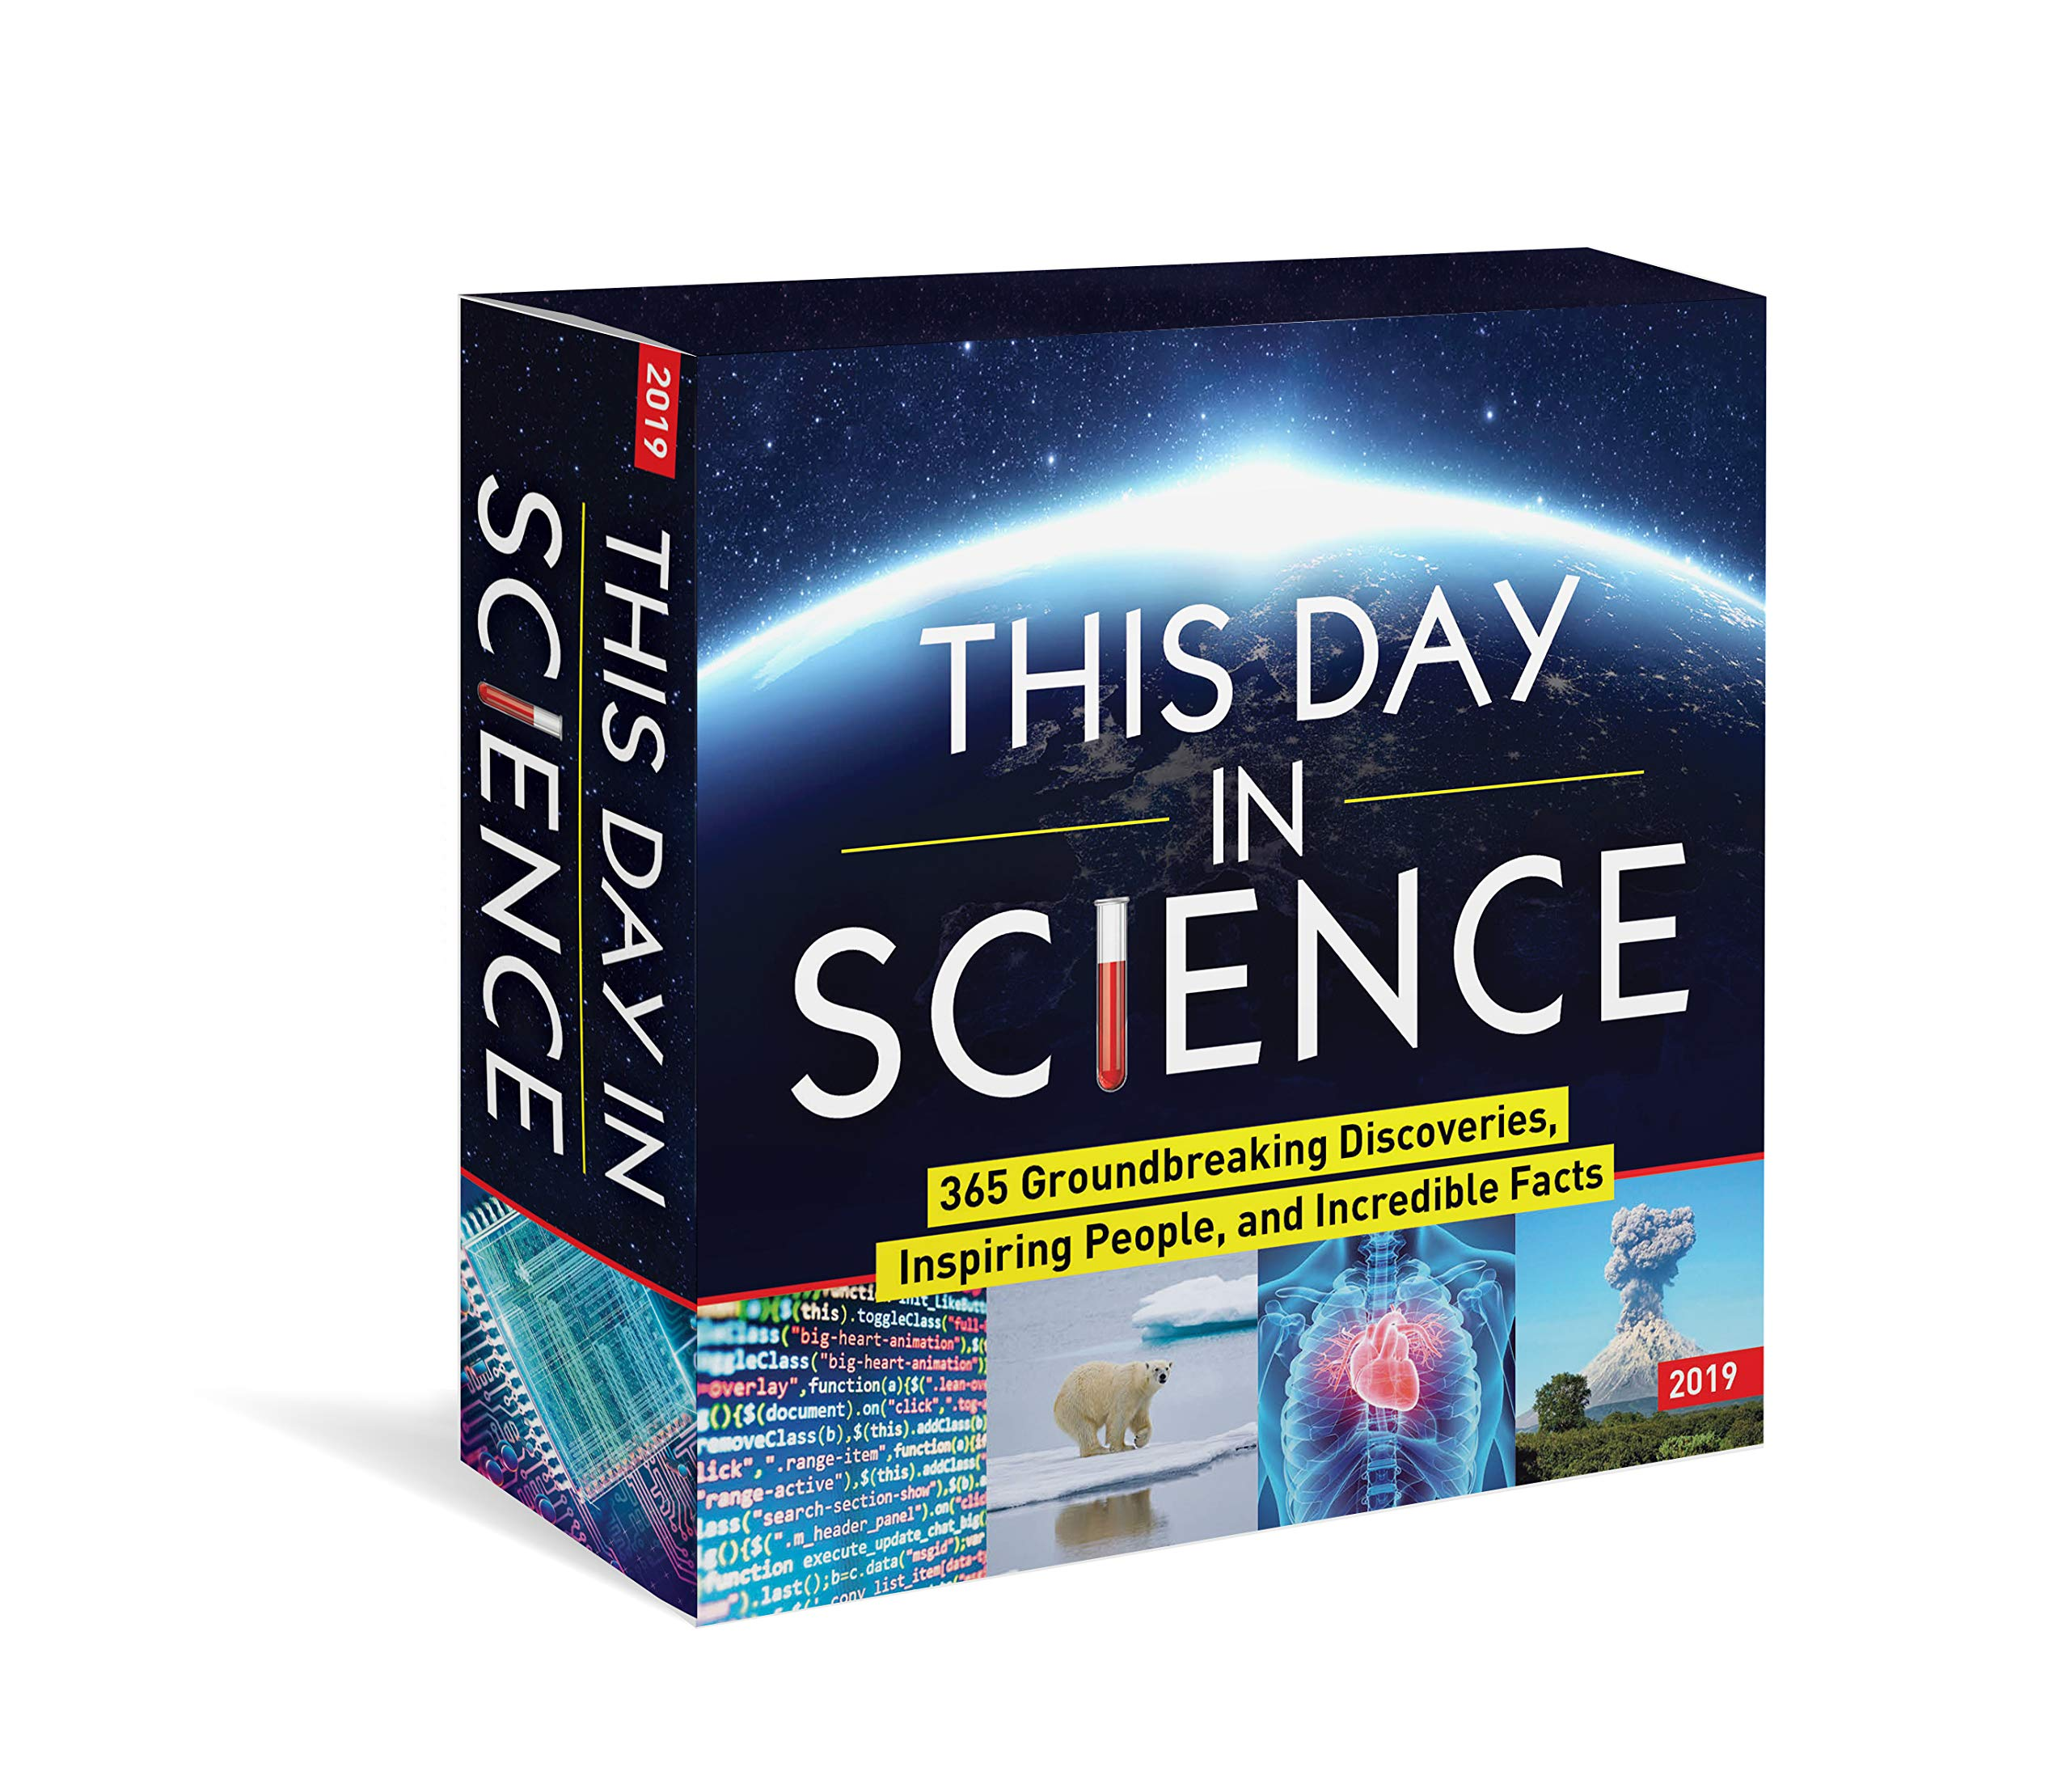 Download 2019 This Day in Science Boxed Calendar: 365 Groundbreaking Discoveries, Inspiring People, and Incredible Facts ebook